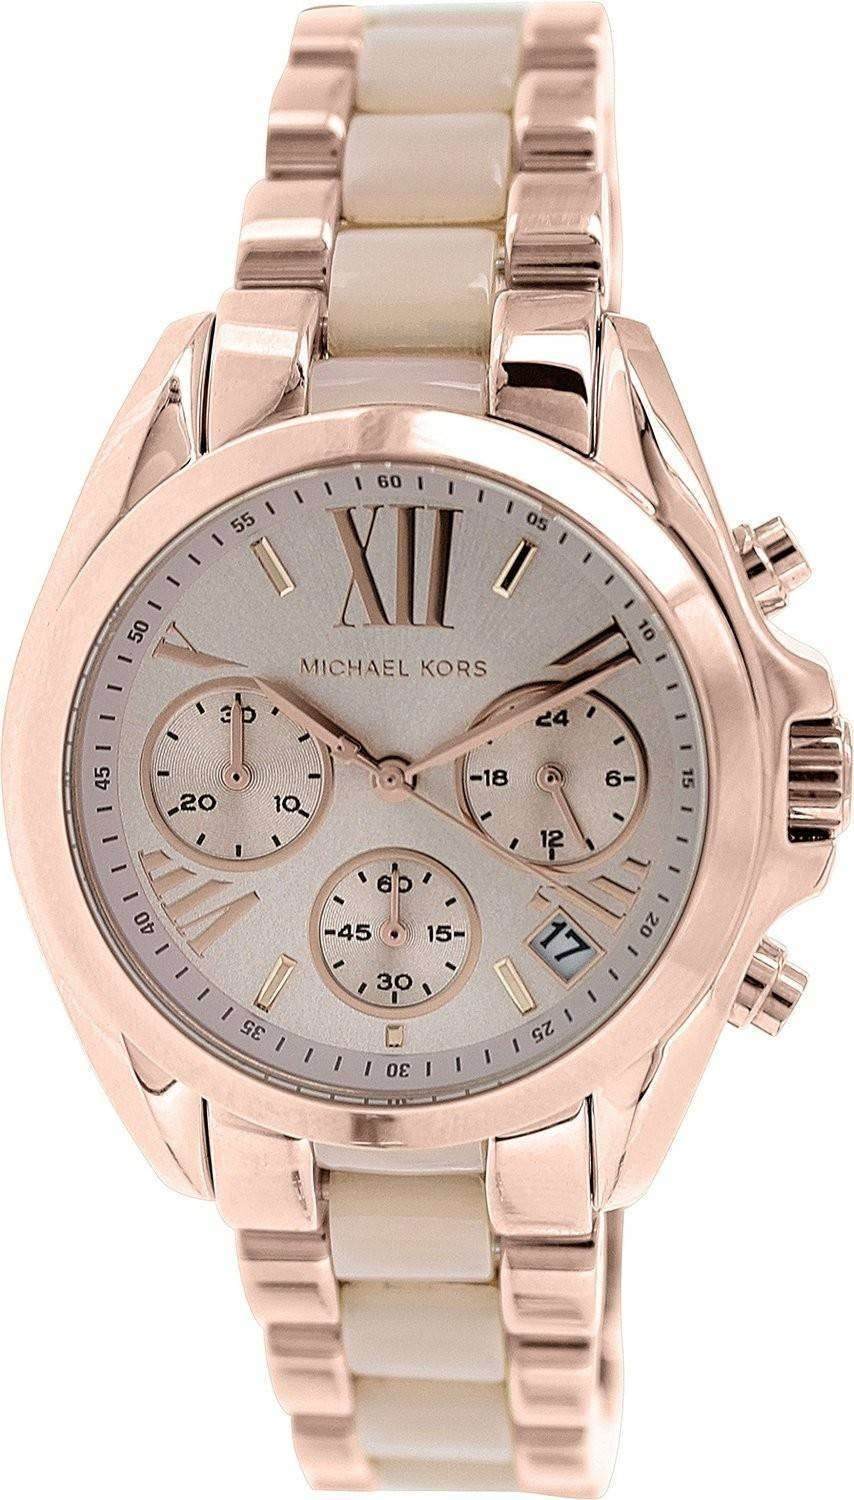 331f451aaf7 Michael Kors Bradshaw Mini Chronograph MK6066 Womens Watch - ZetaWatches